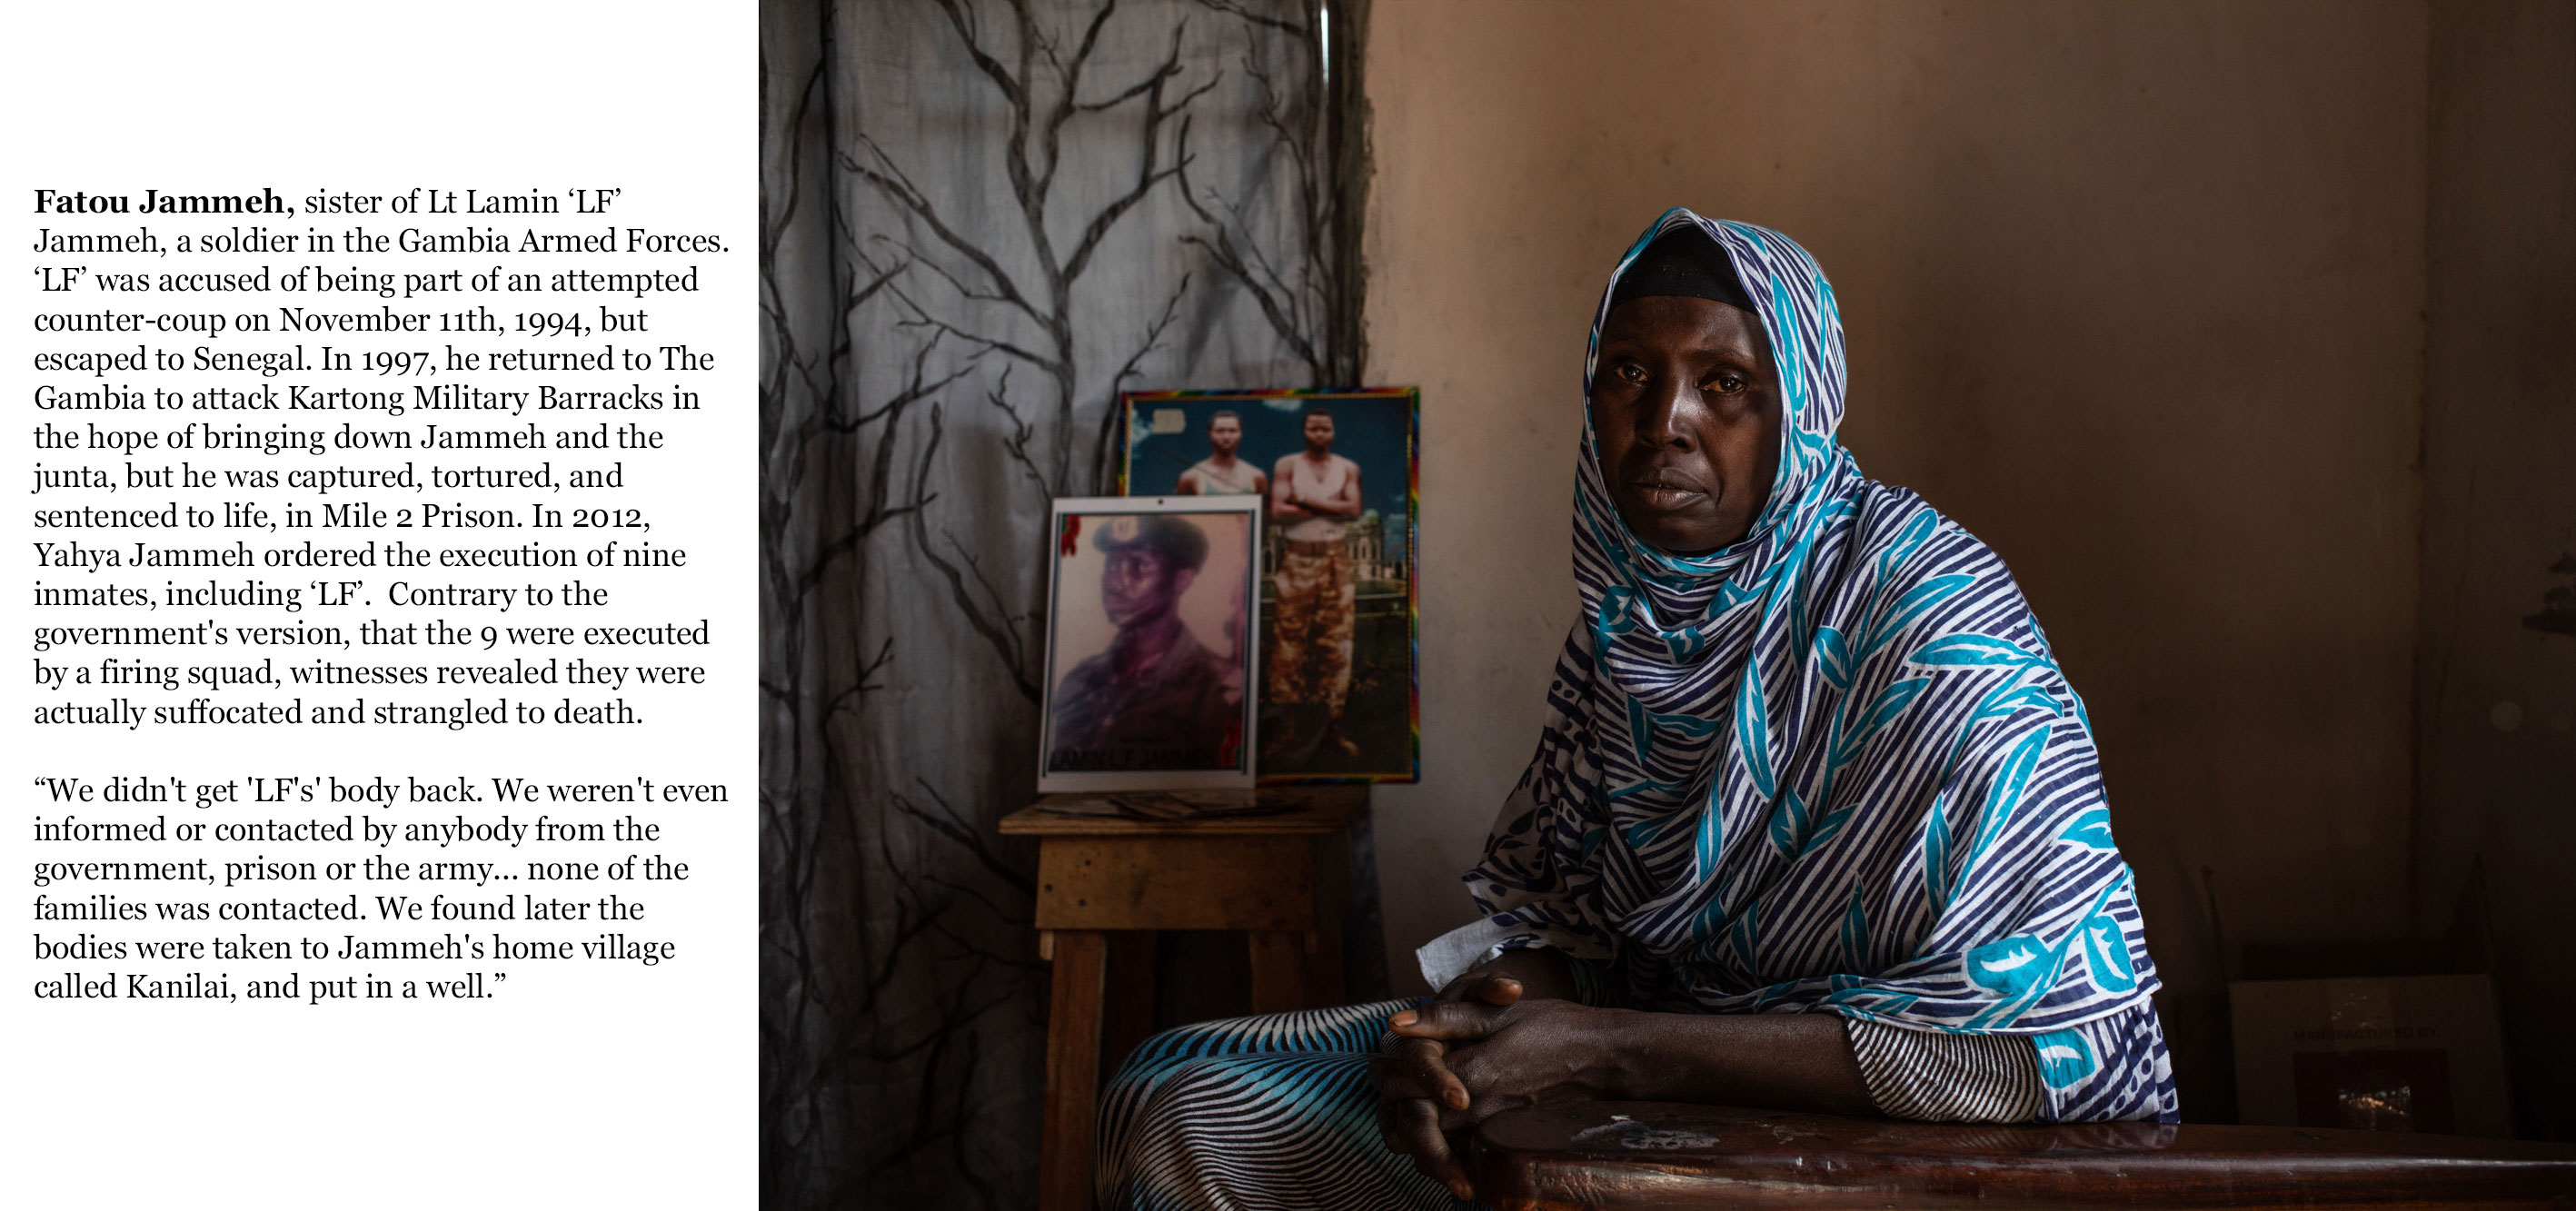 Gambia victims and resisters - fatou_jammeh, sister of Lt LF Jammeh who was killed after 1994 coup attempt, -0221_TEXT_WEB